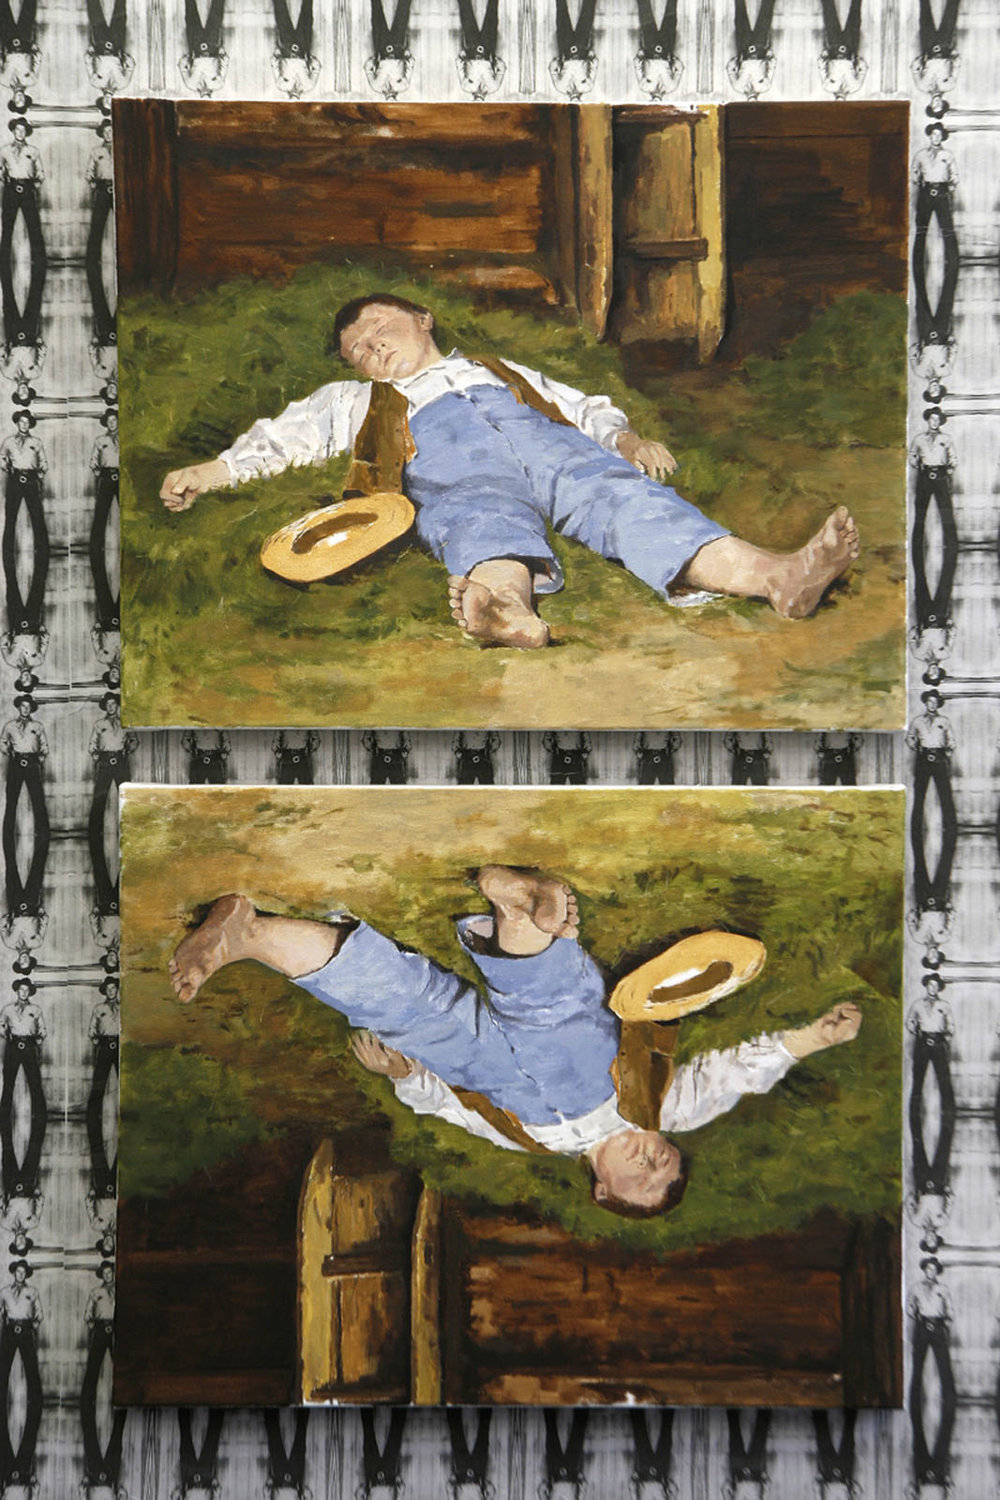 Keepin' it real (anker) 2010, oil on canvas, 2 panels(22 x 28 in each)